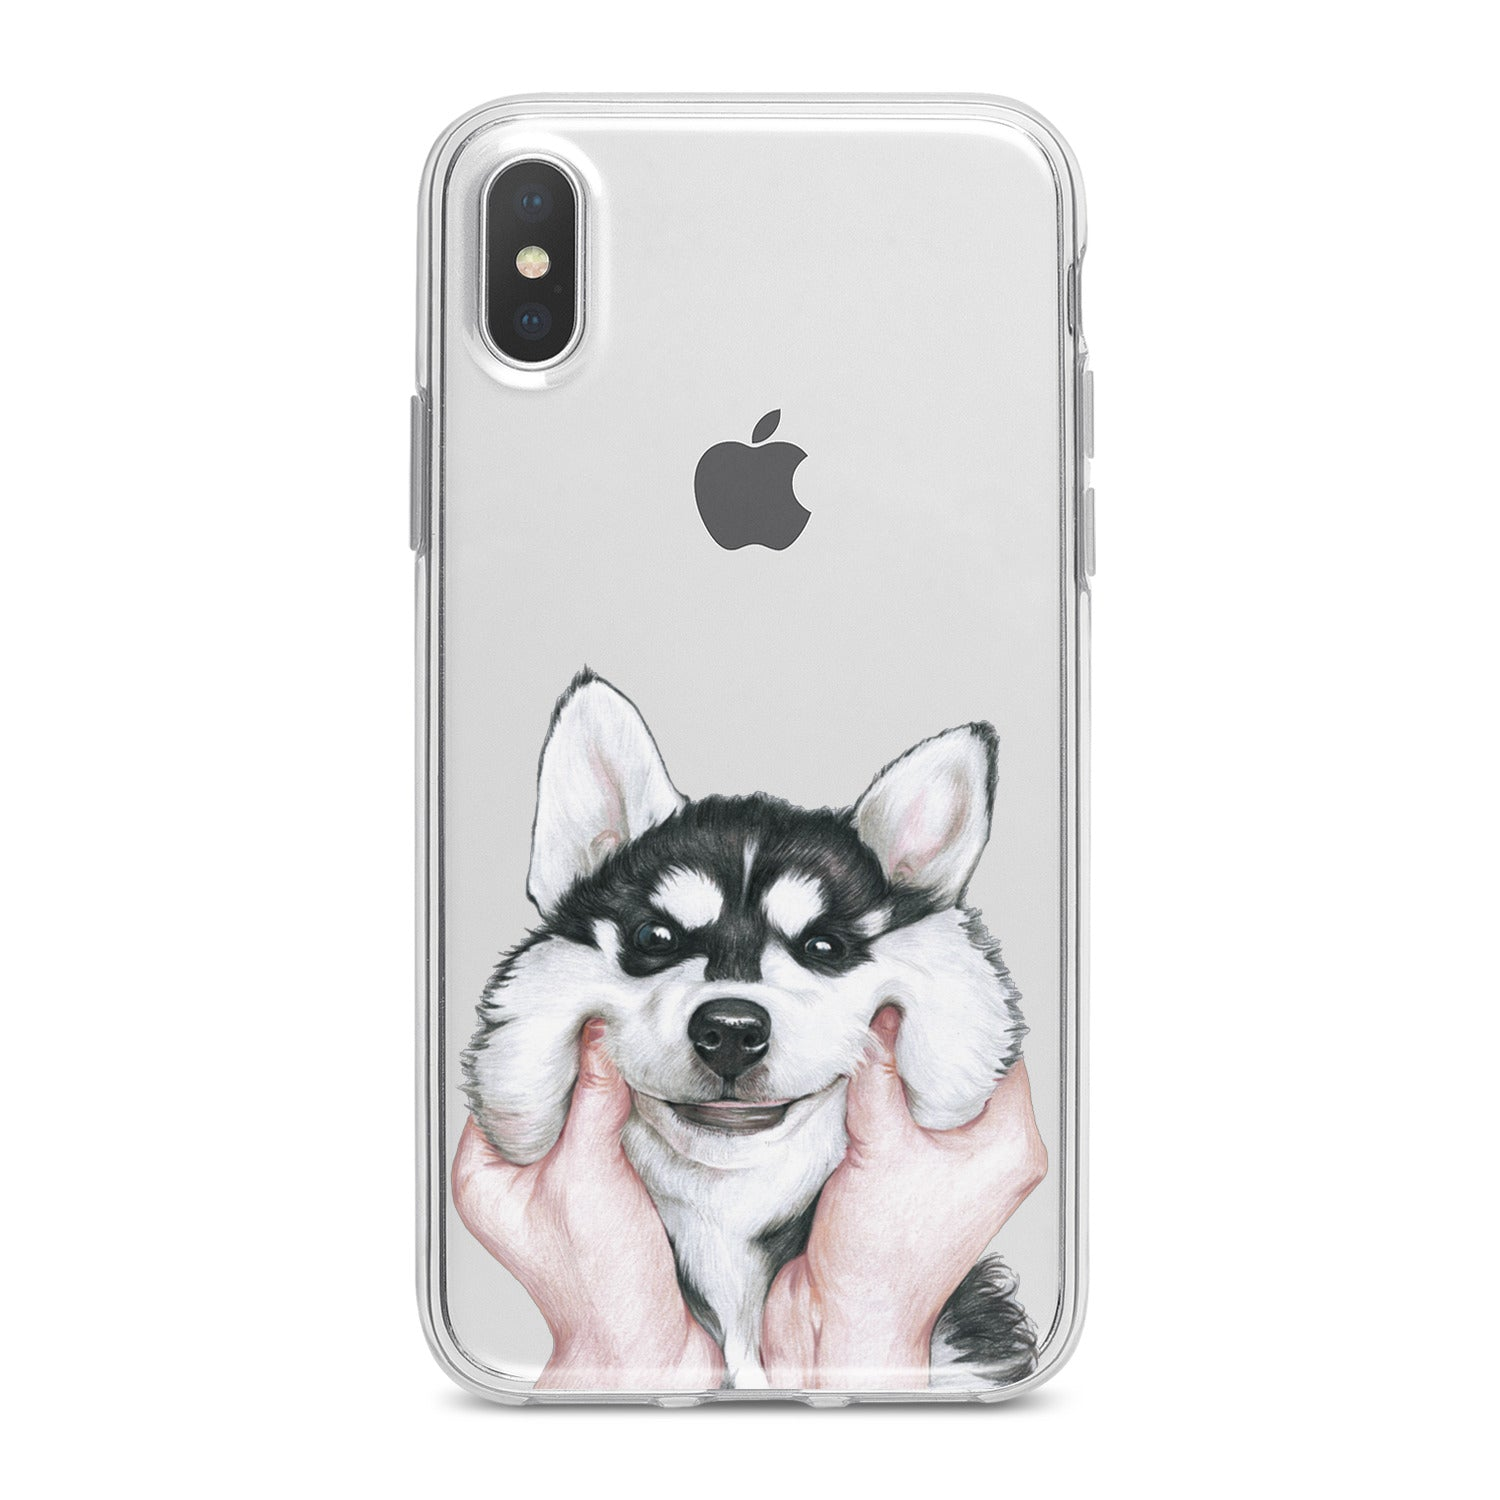 Lex Altern Charming Husky Phone Case for your iPhone & Android phone.